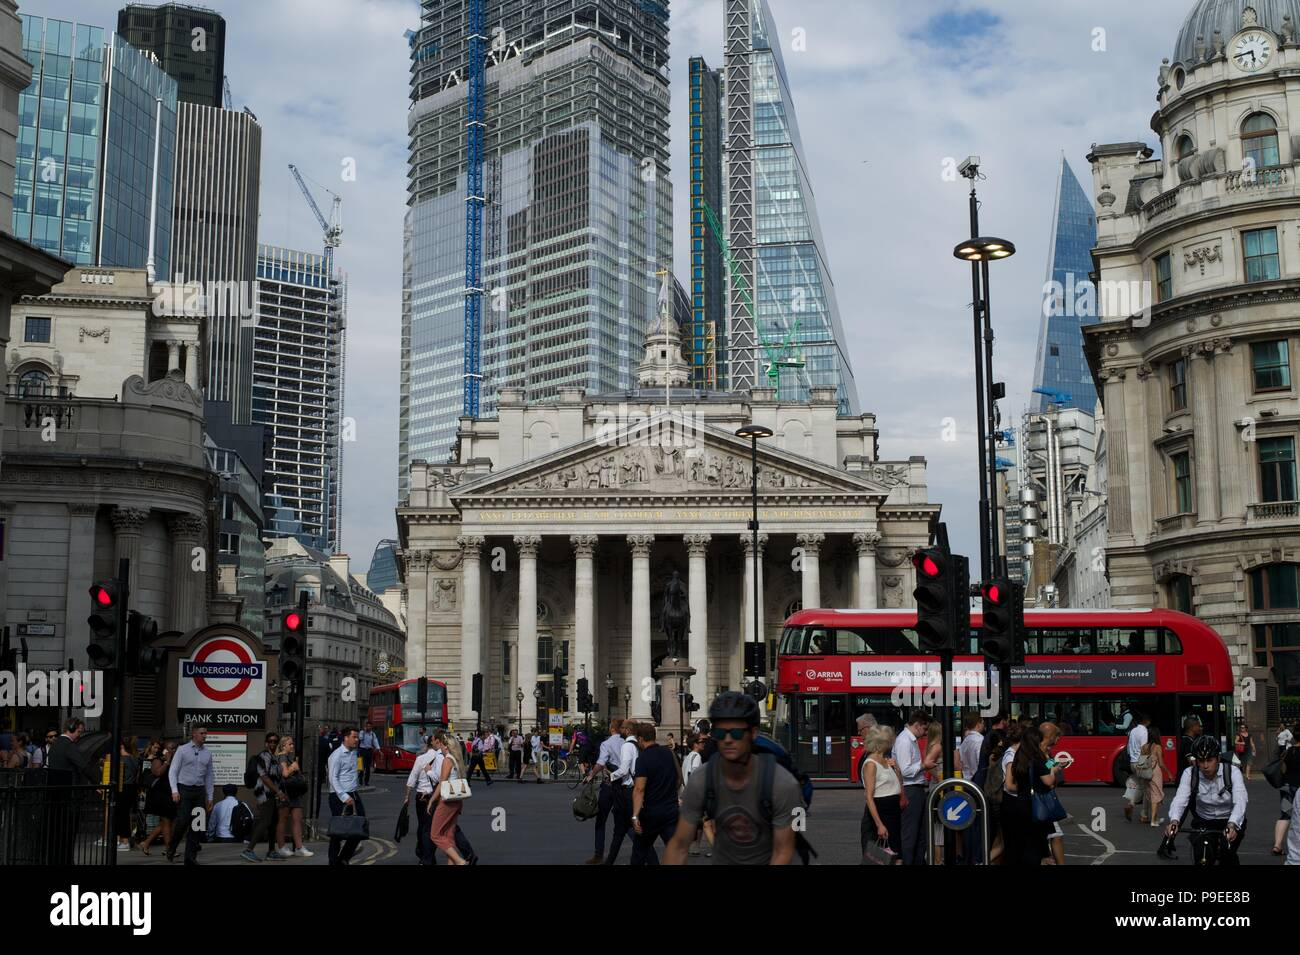 Bishopsgate, London's newest skyscrapers - Stock Image